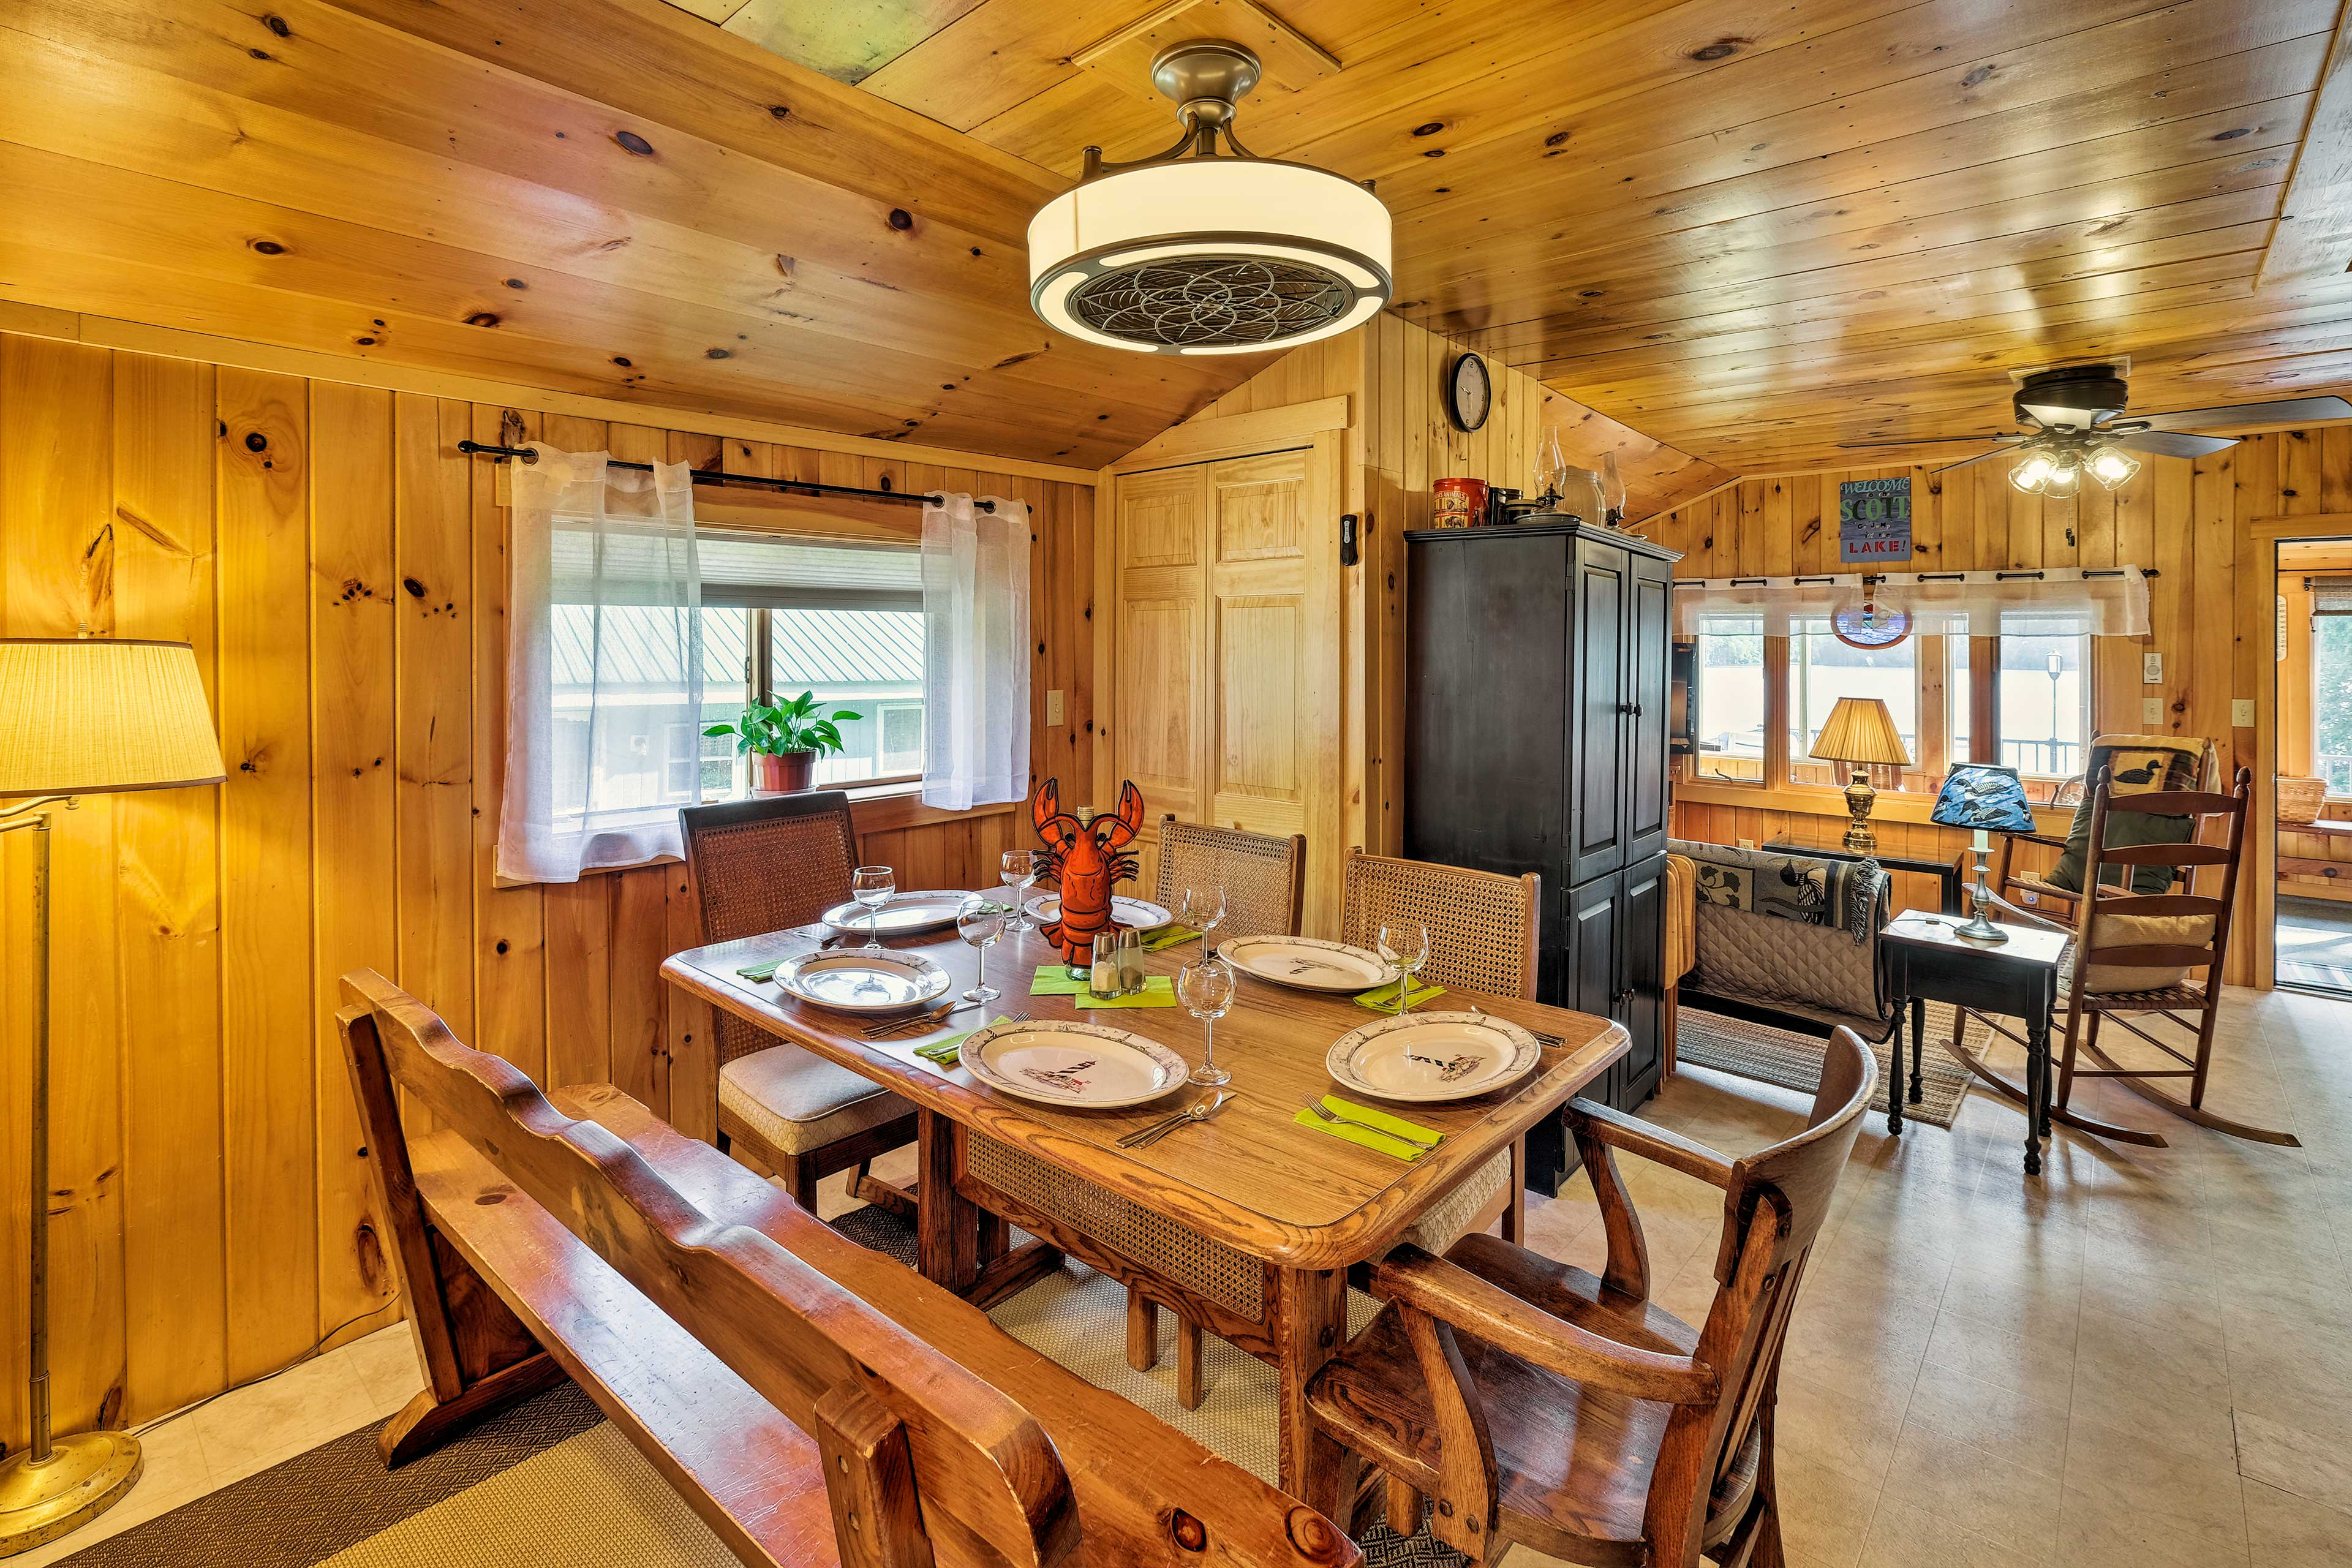 Head into the dining area to feast on a home-cooked meal!